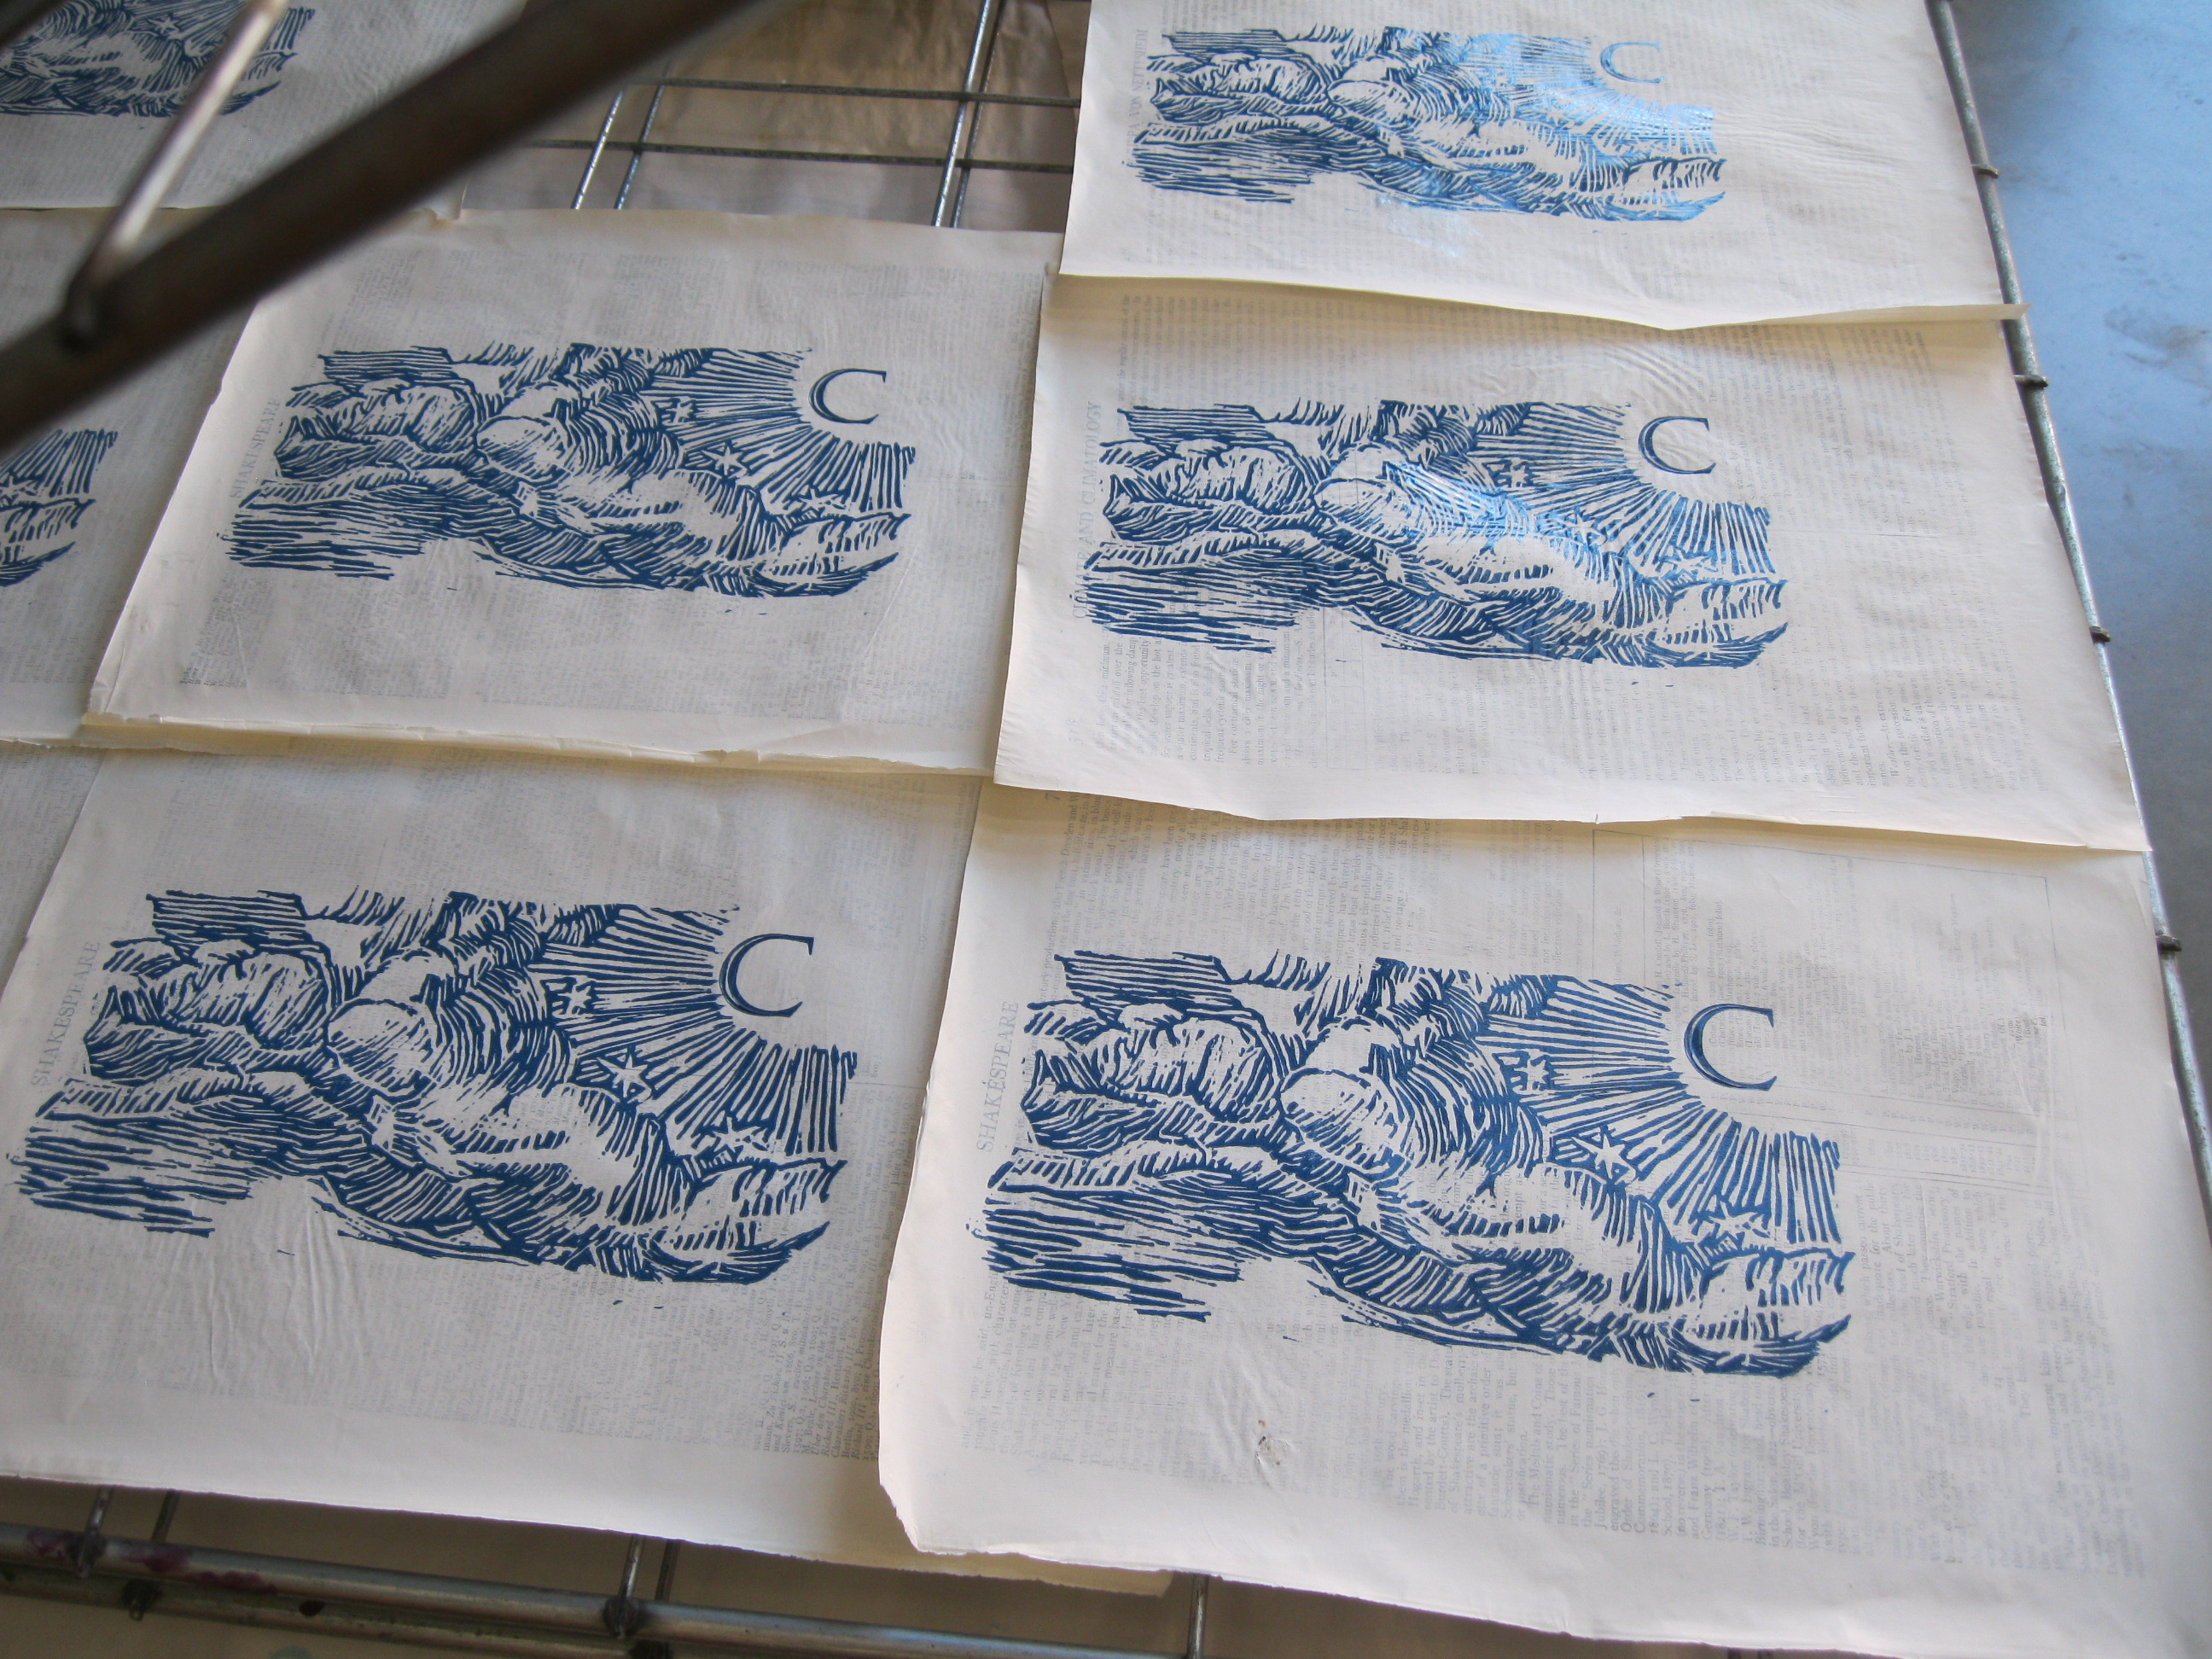 Drying Lino Block Prints